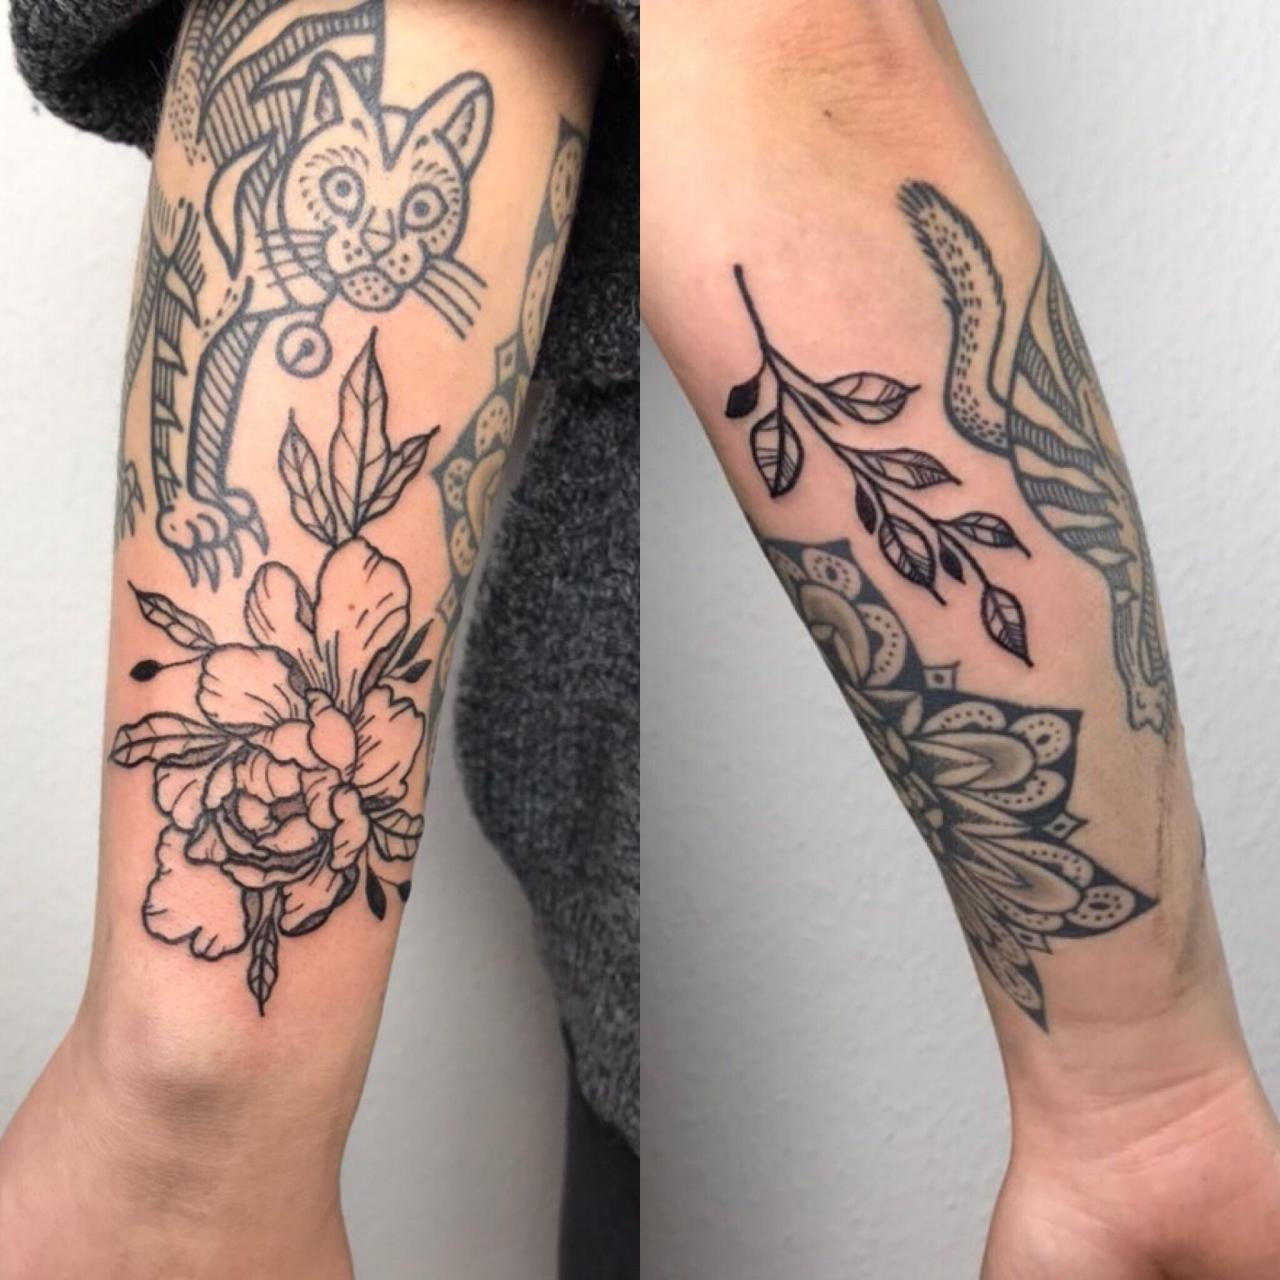 Filling up my arm nicely! Done by Florina Kovacs at Queen of Hearts Tattoo, Budapest